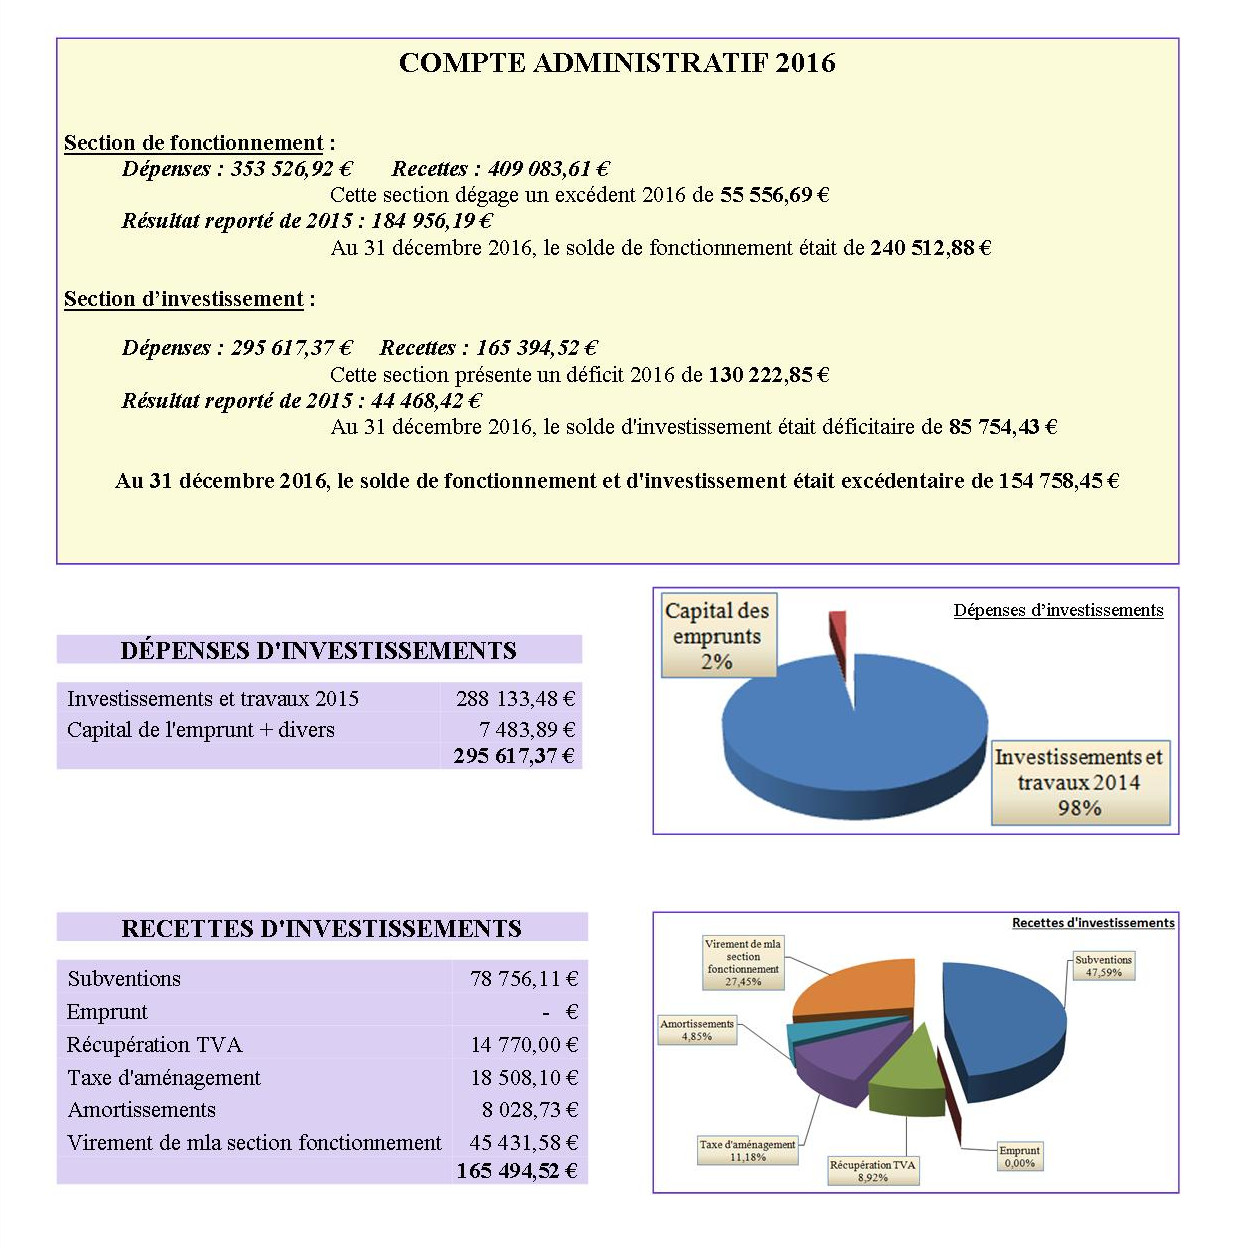 2017 compte administrative 2016